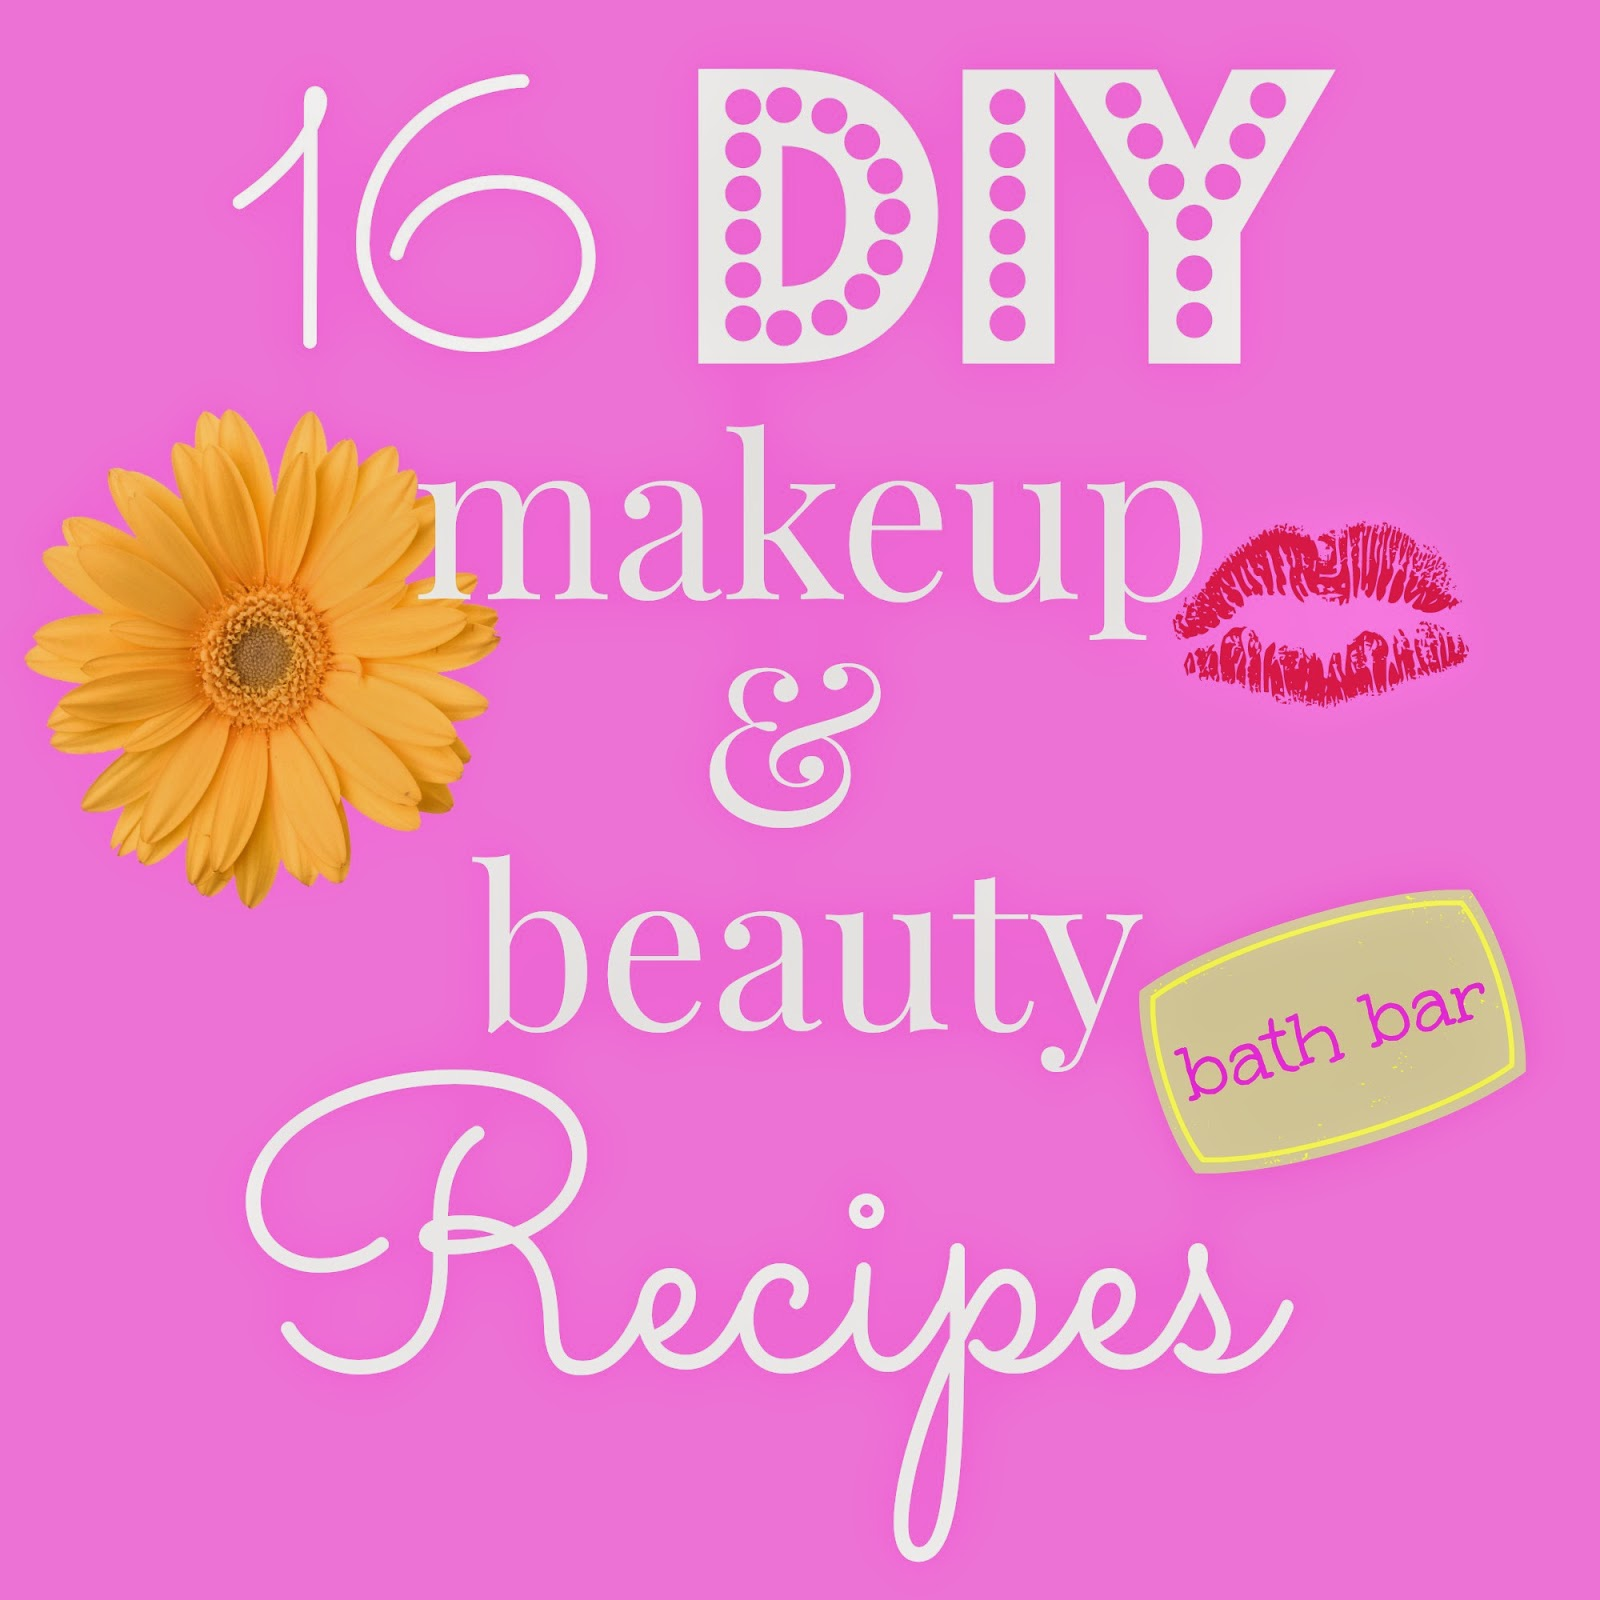 How to make DIY makeup, lip gloss, lotion, hairspray, mascara, perfume, dry shampoo